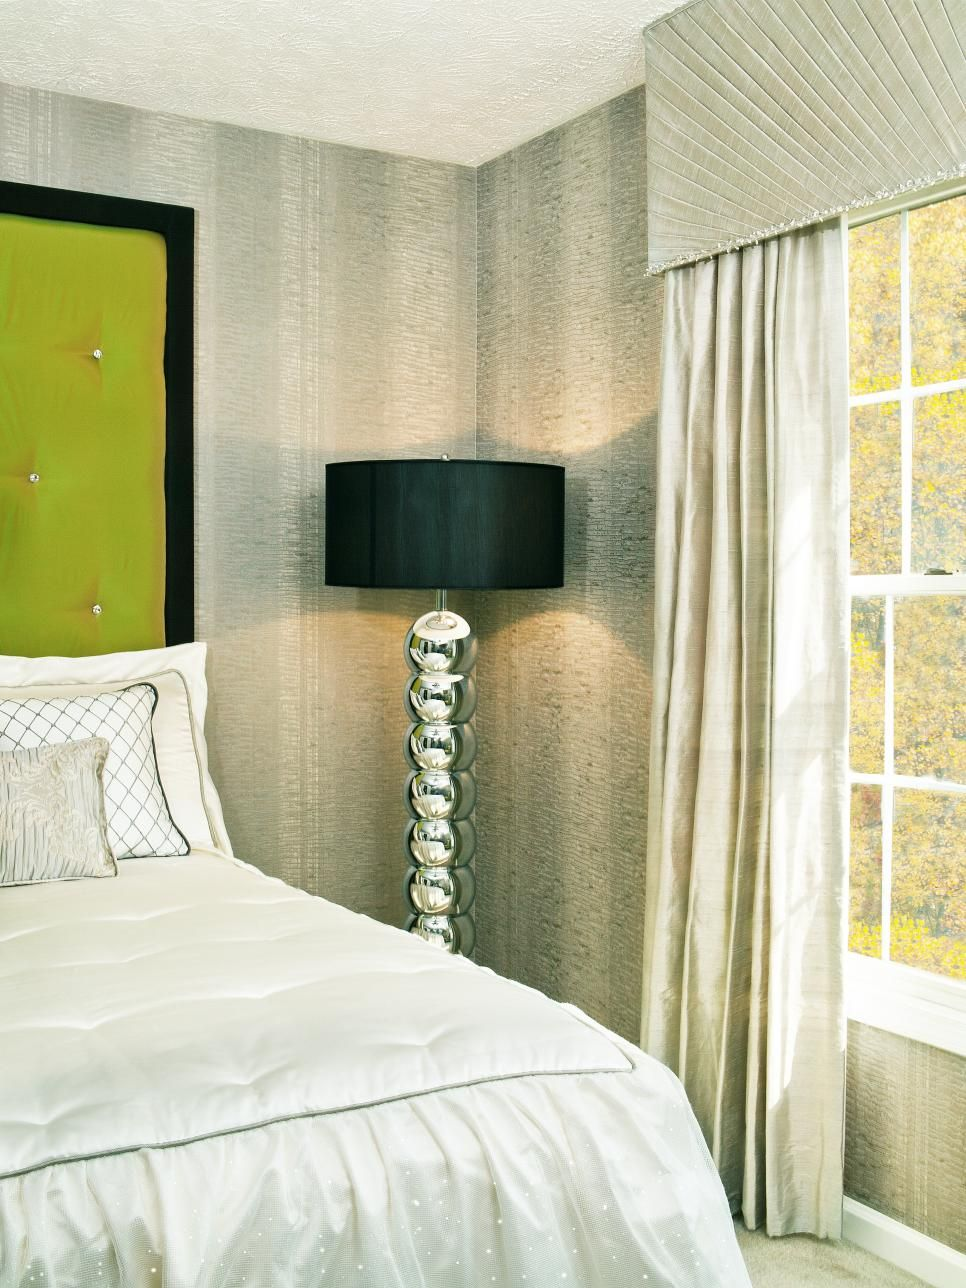 Subtly striped wallpaper and a tall metallic floor lamp add visual depth to this art deco-inspired guest bedroom. Custom touches including a green tufted upholstered headboard and combination comforter/dust ruffle help make the neutral space an ideal feminine retreat for the homeowner.